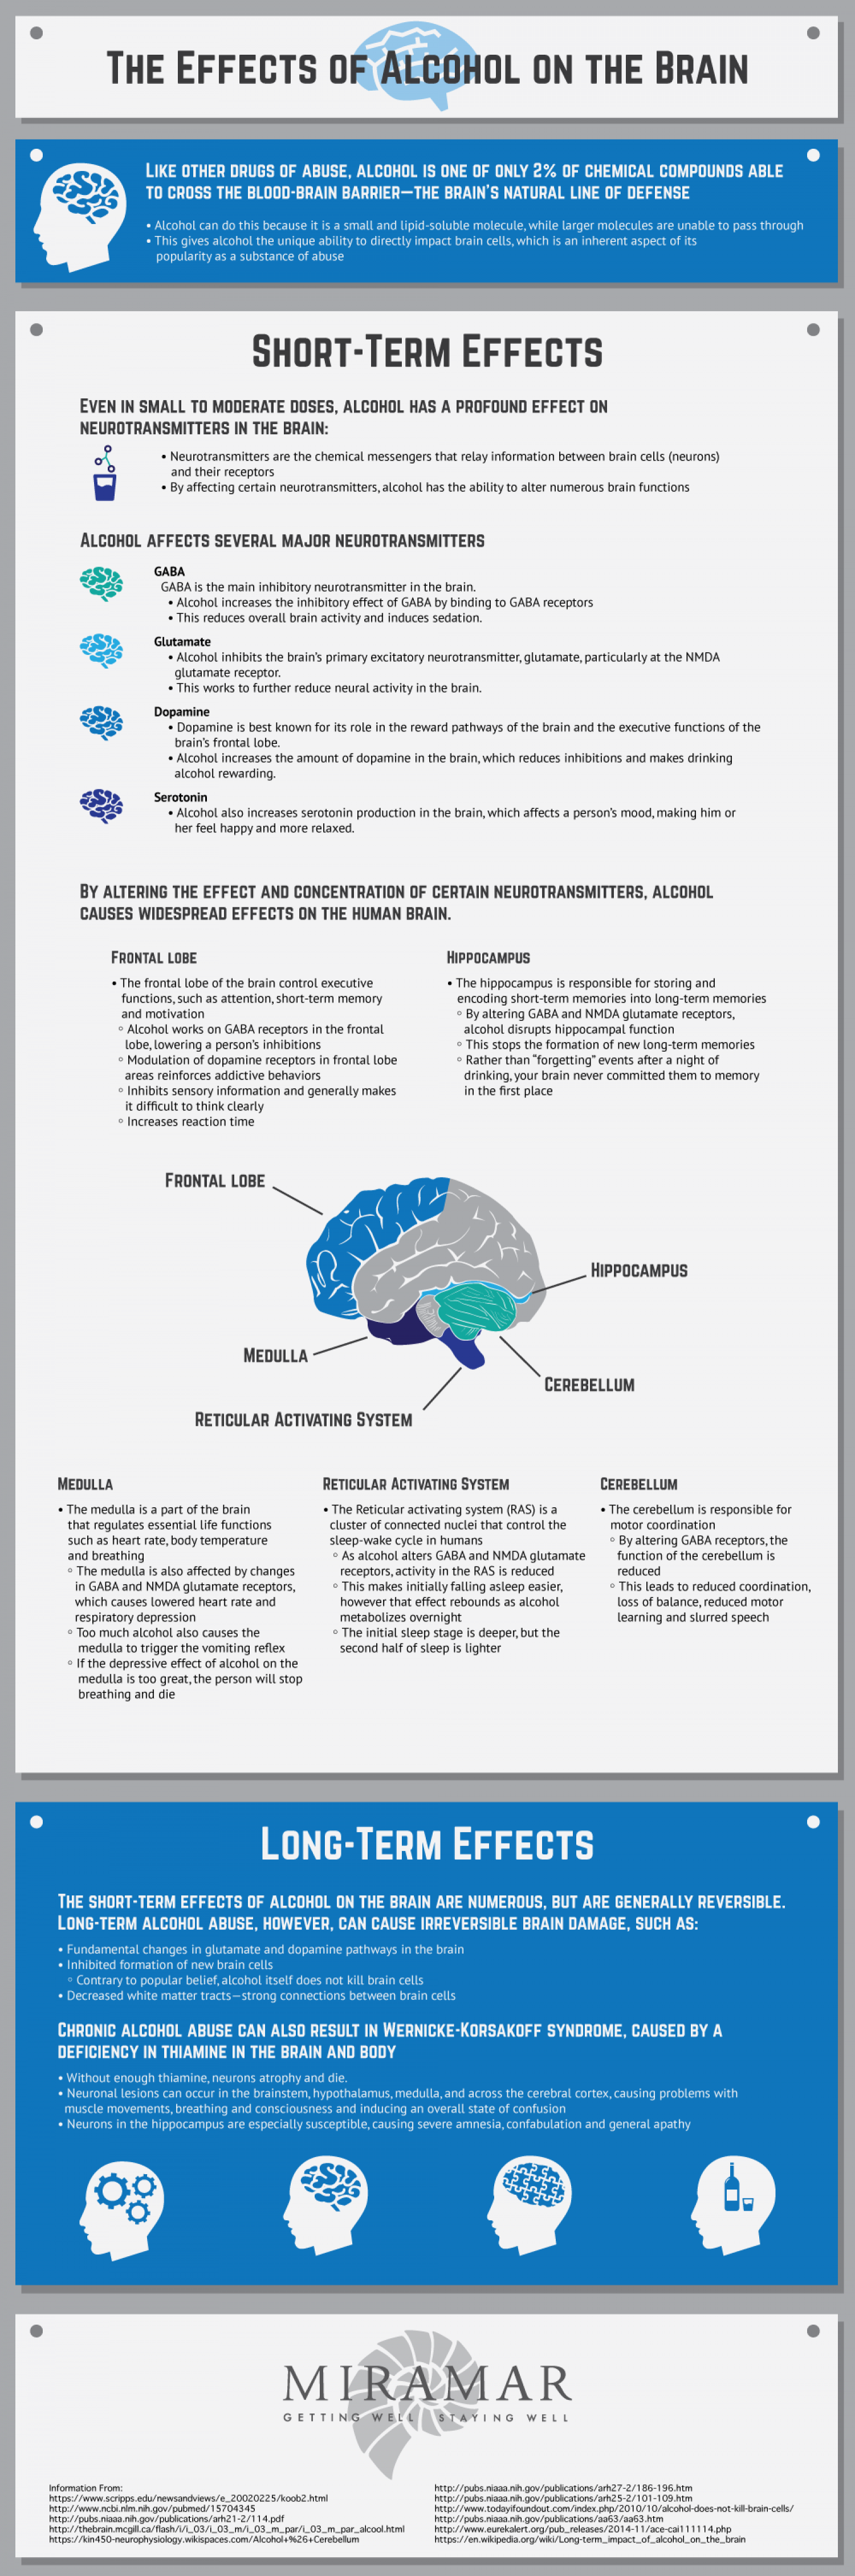 The Effects of Alcohol on the Brain Infographic